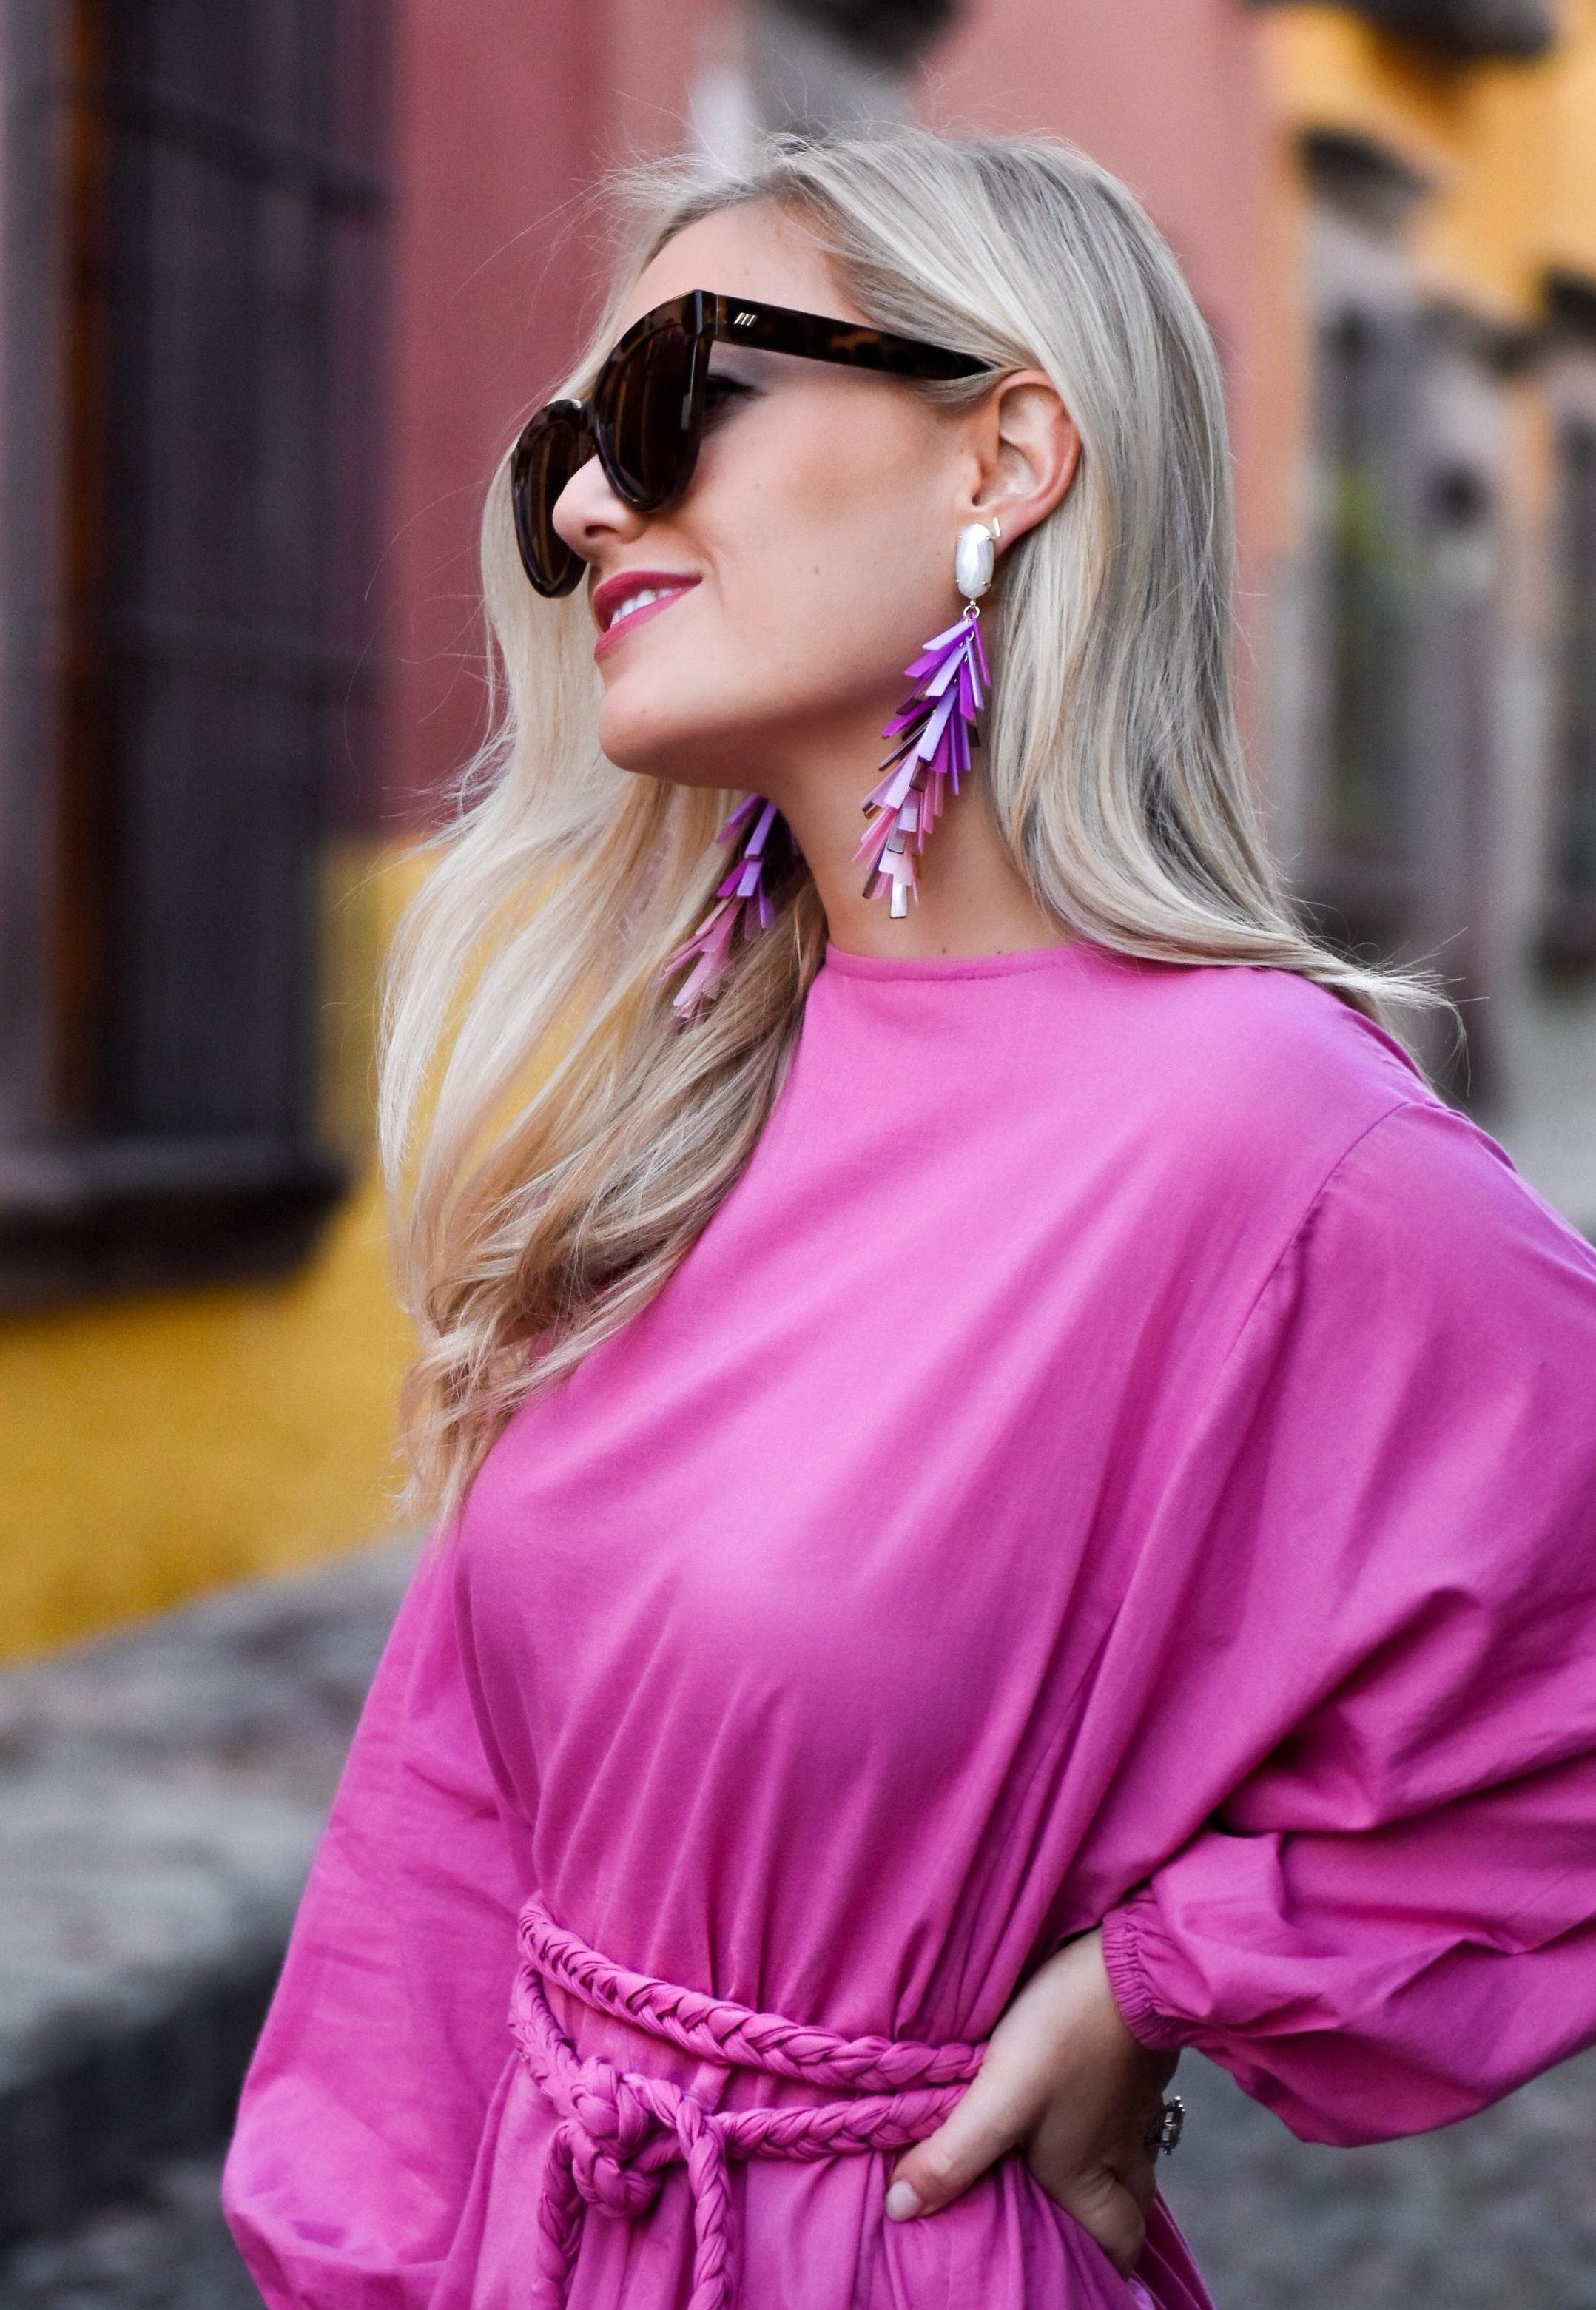 Kendra Scott, Kendra Scott Earrings, Dallas Blogger, Fashion Blogger, Travel Blogger, Mexico, Cult Gaia, Le Specs Sunglasses, Kendra Scott Justyne Statement Earrings, Schutz Heels